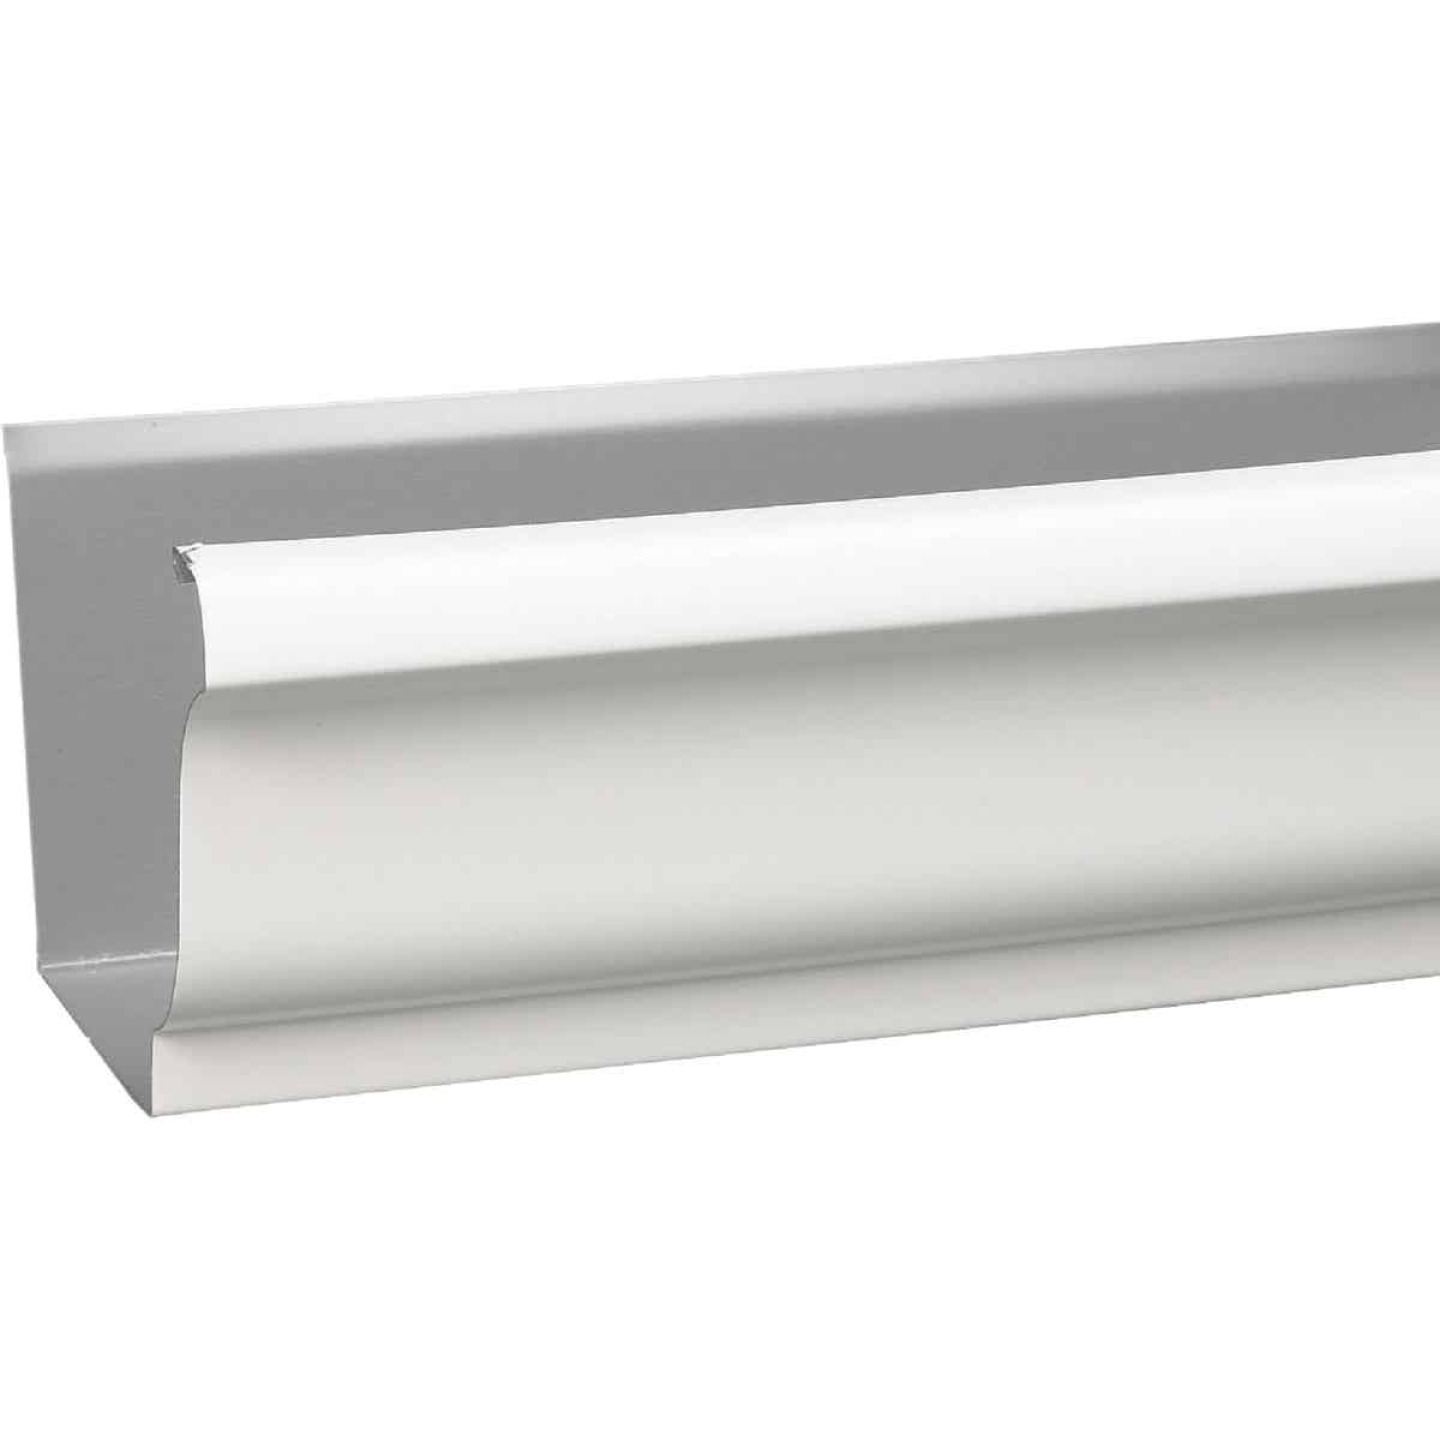 Amerimax 4 In. x 10 Ft. K-Style White Galvanized Steel Gutter Image 1